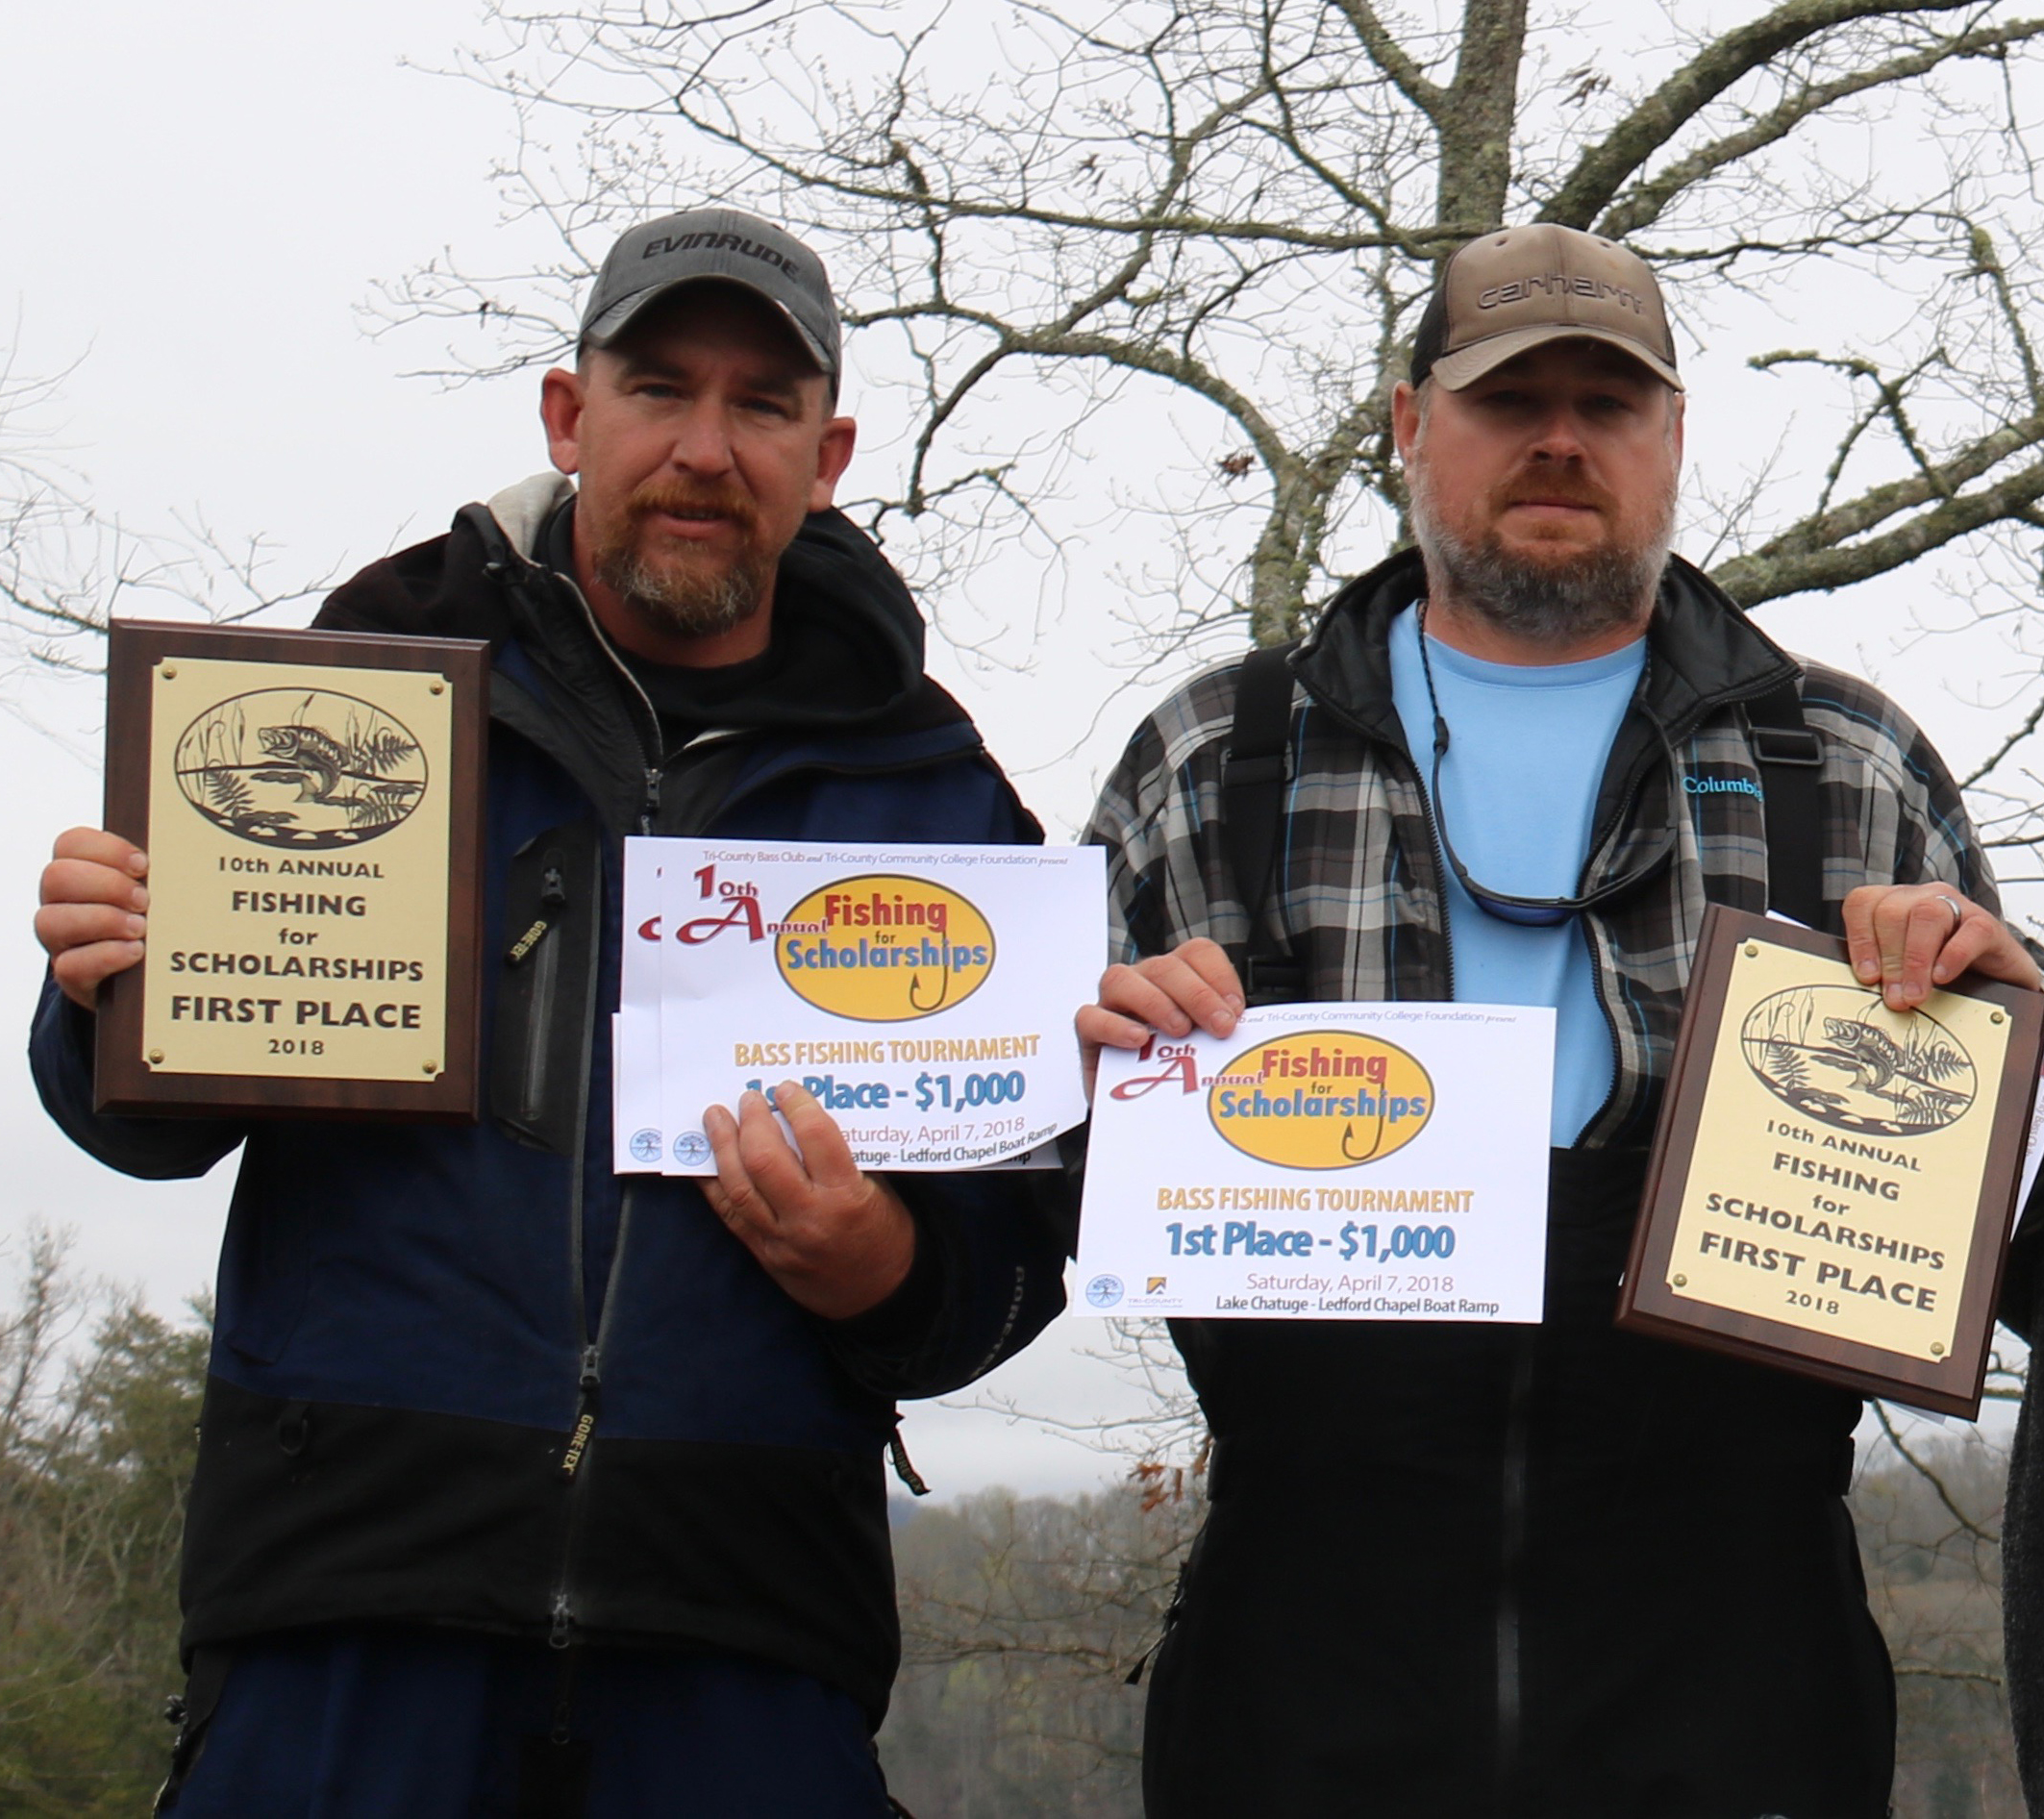 1st place fishing winners